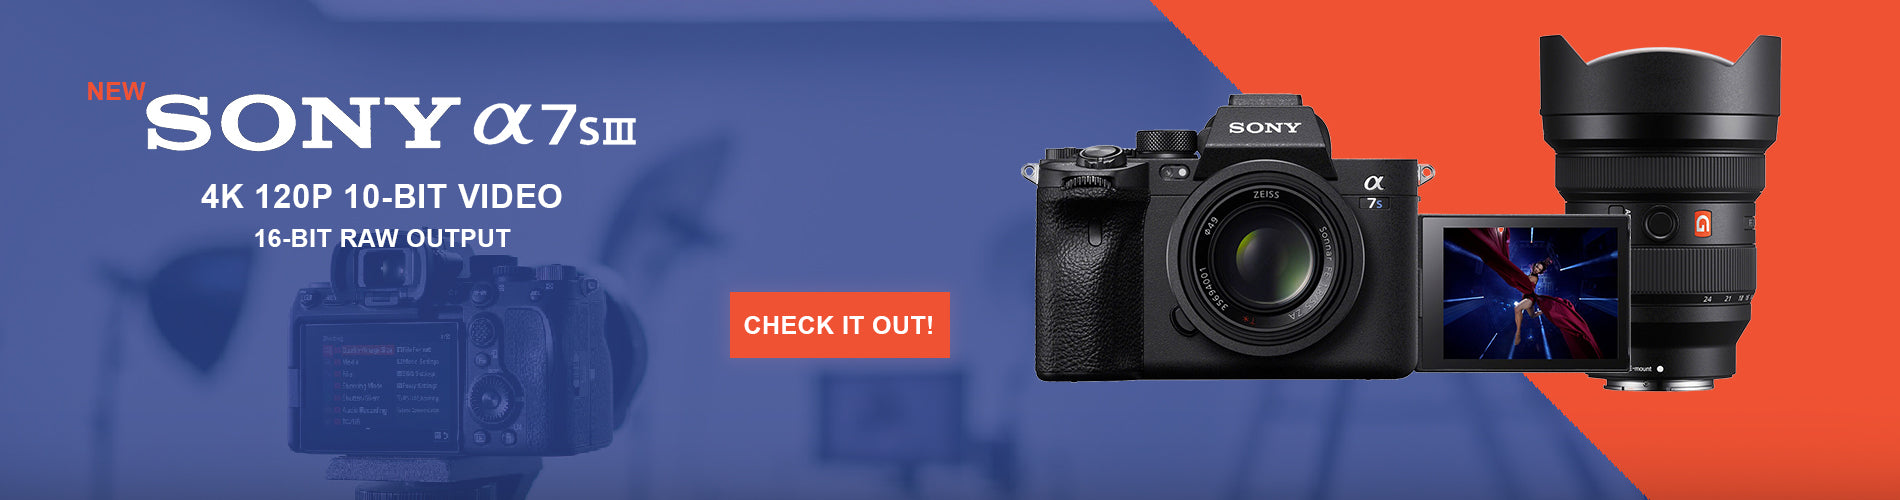 Sony a7s3 banner 07 29 20